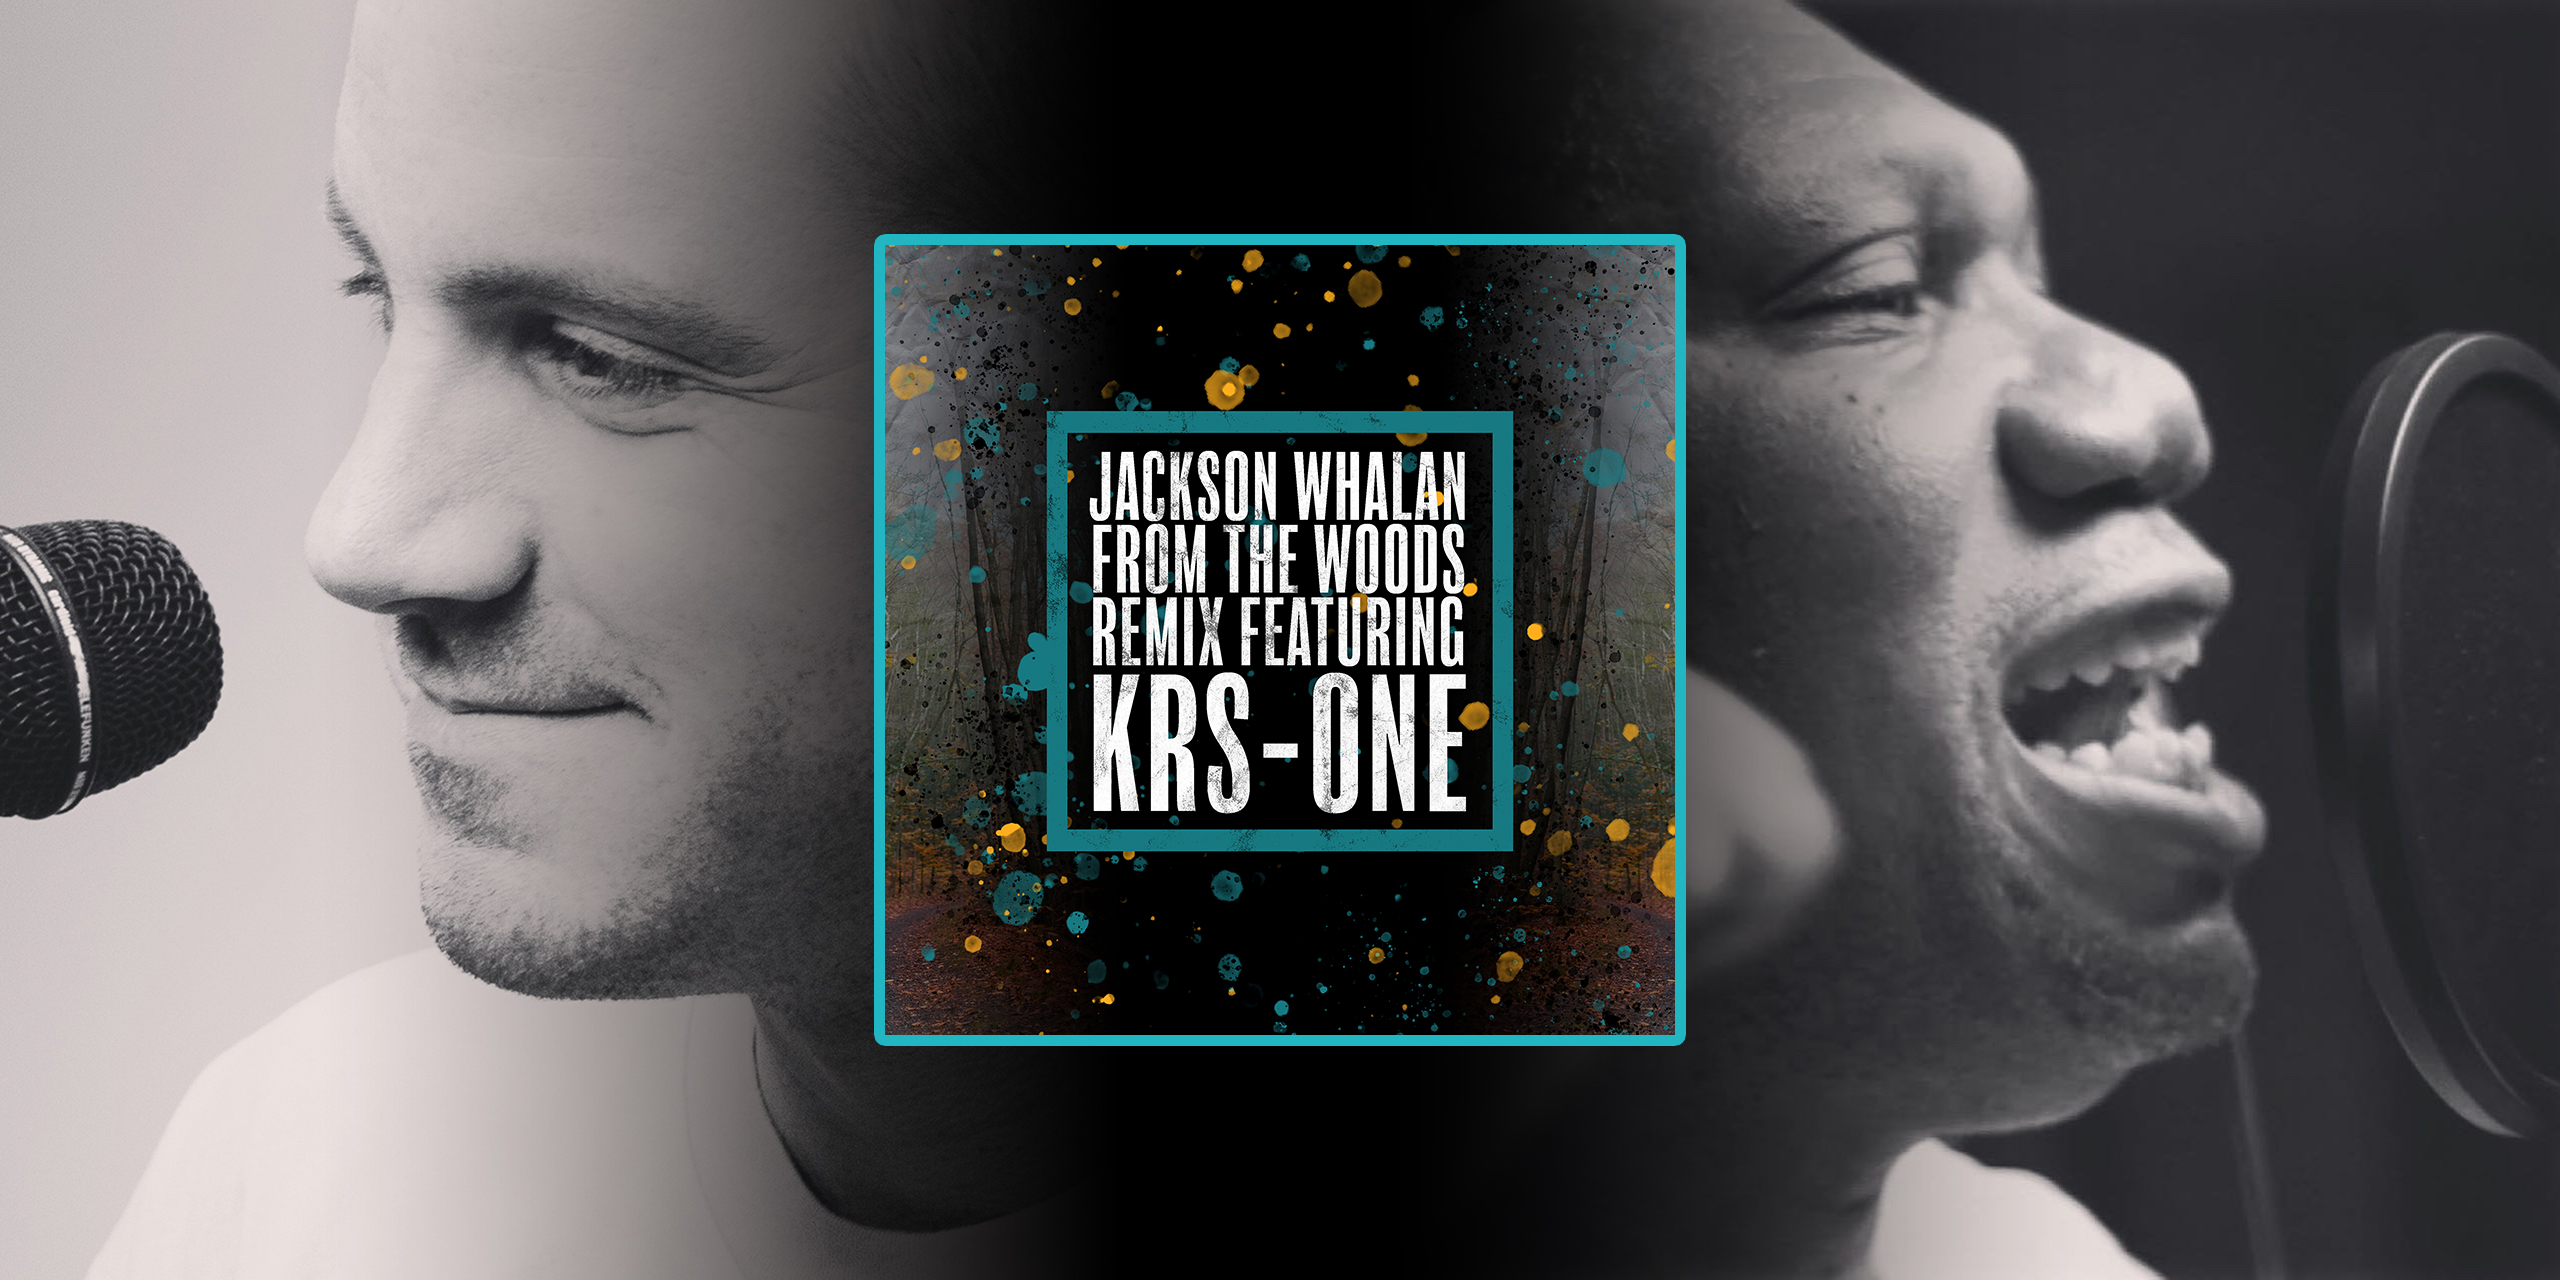 microphone-krs-one-text-hip-hop-song-album-cover-jackson-whalan